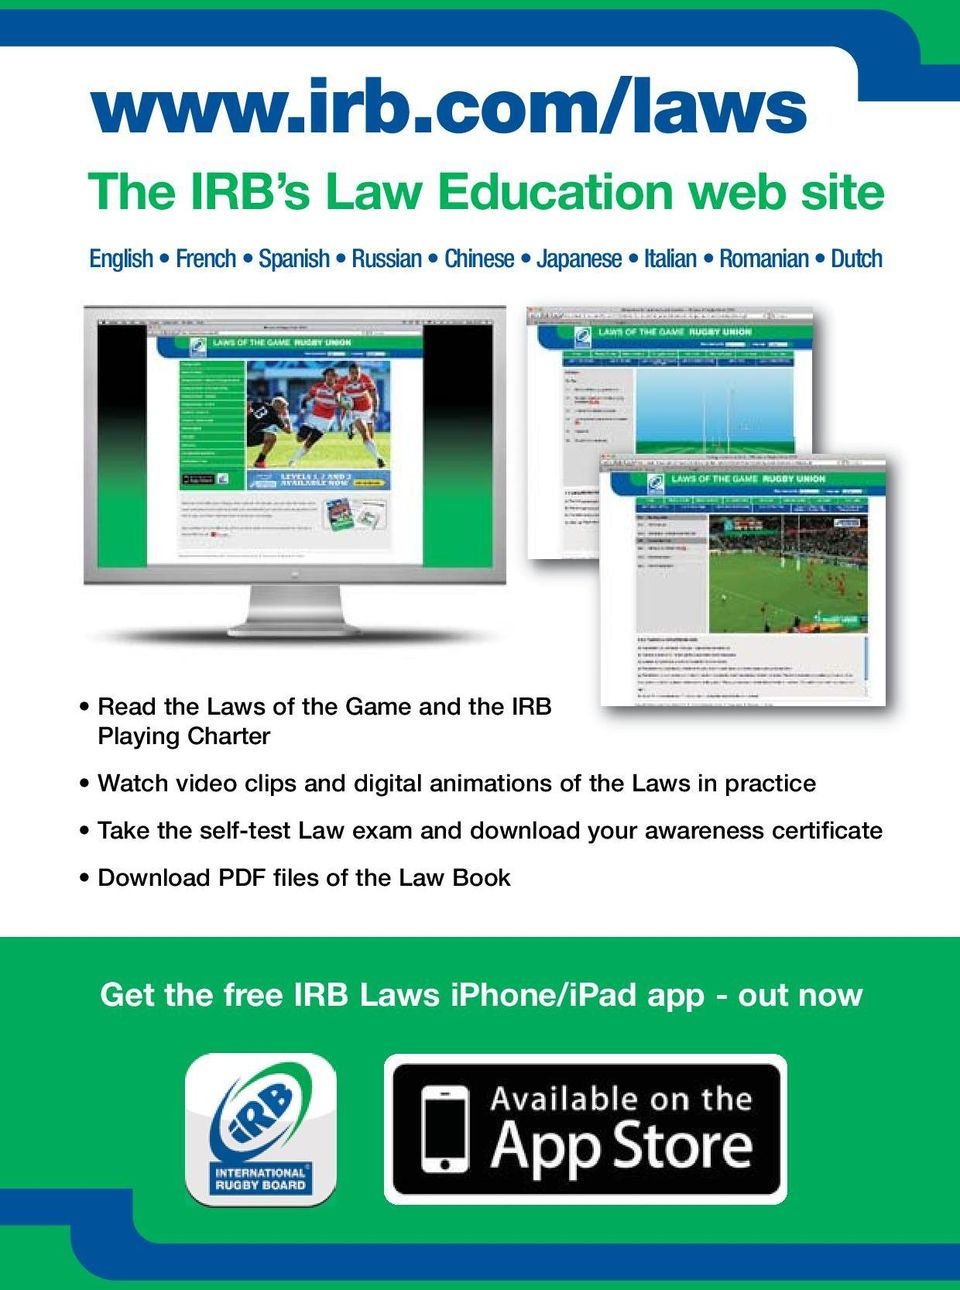 Romanian Dutch Read the Laws of the Game and the IRB Playing Charter Watch video clips and